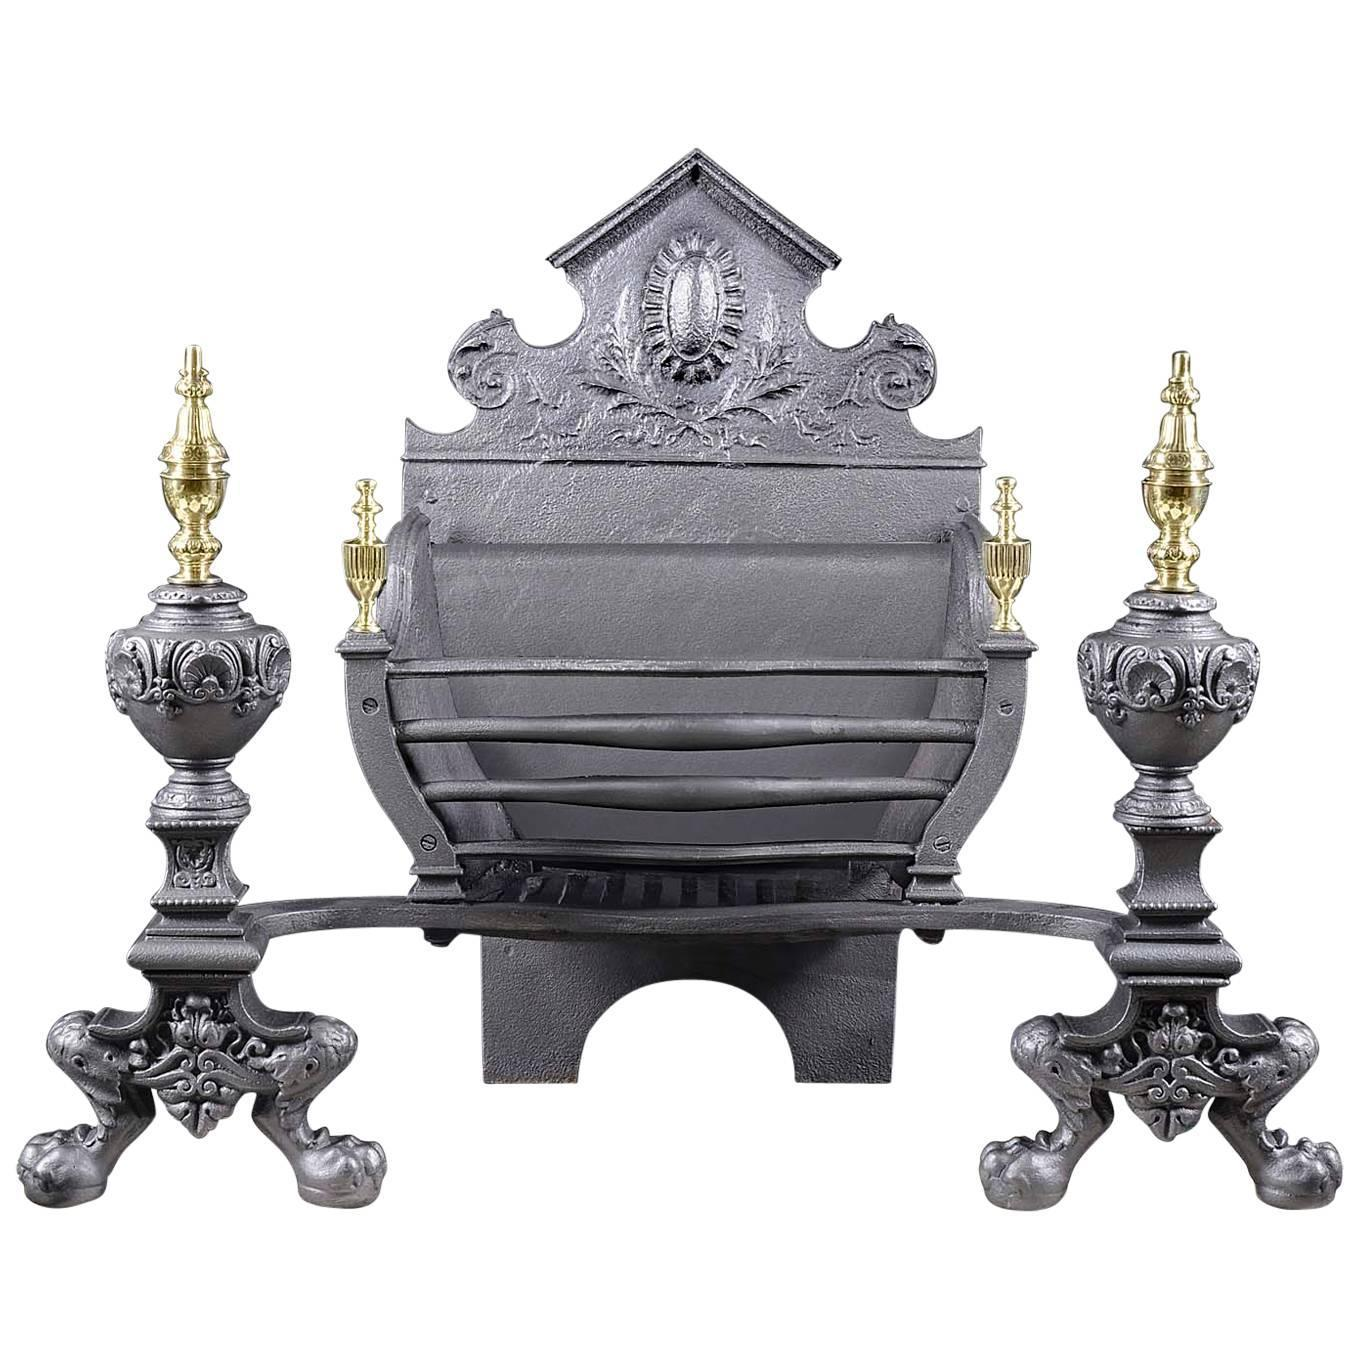 Large Antique Victorian Cast Iron And Brass Fireplace Grate Circa 1880 For Sale At 1stdibs